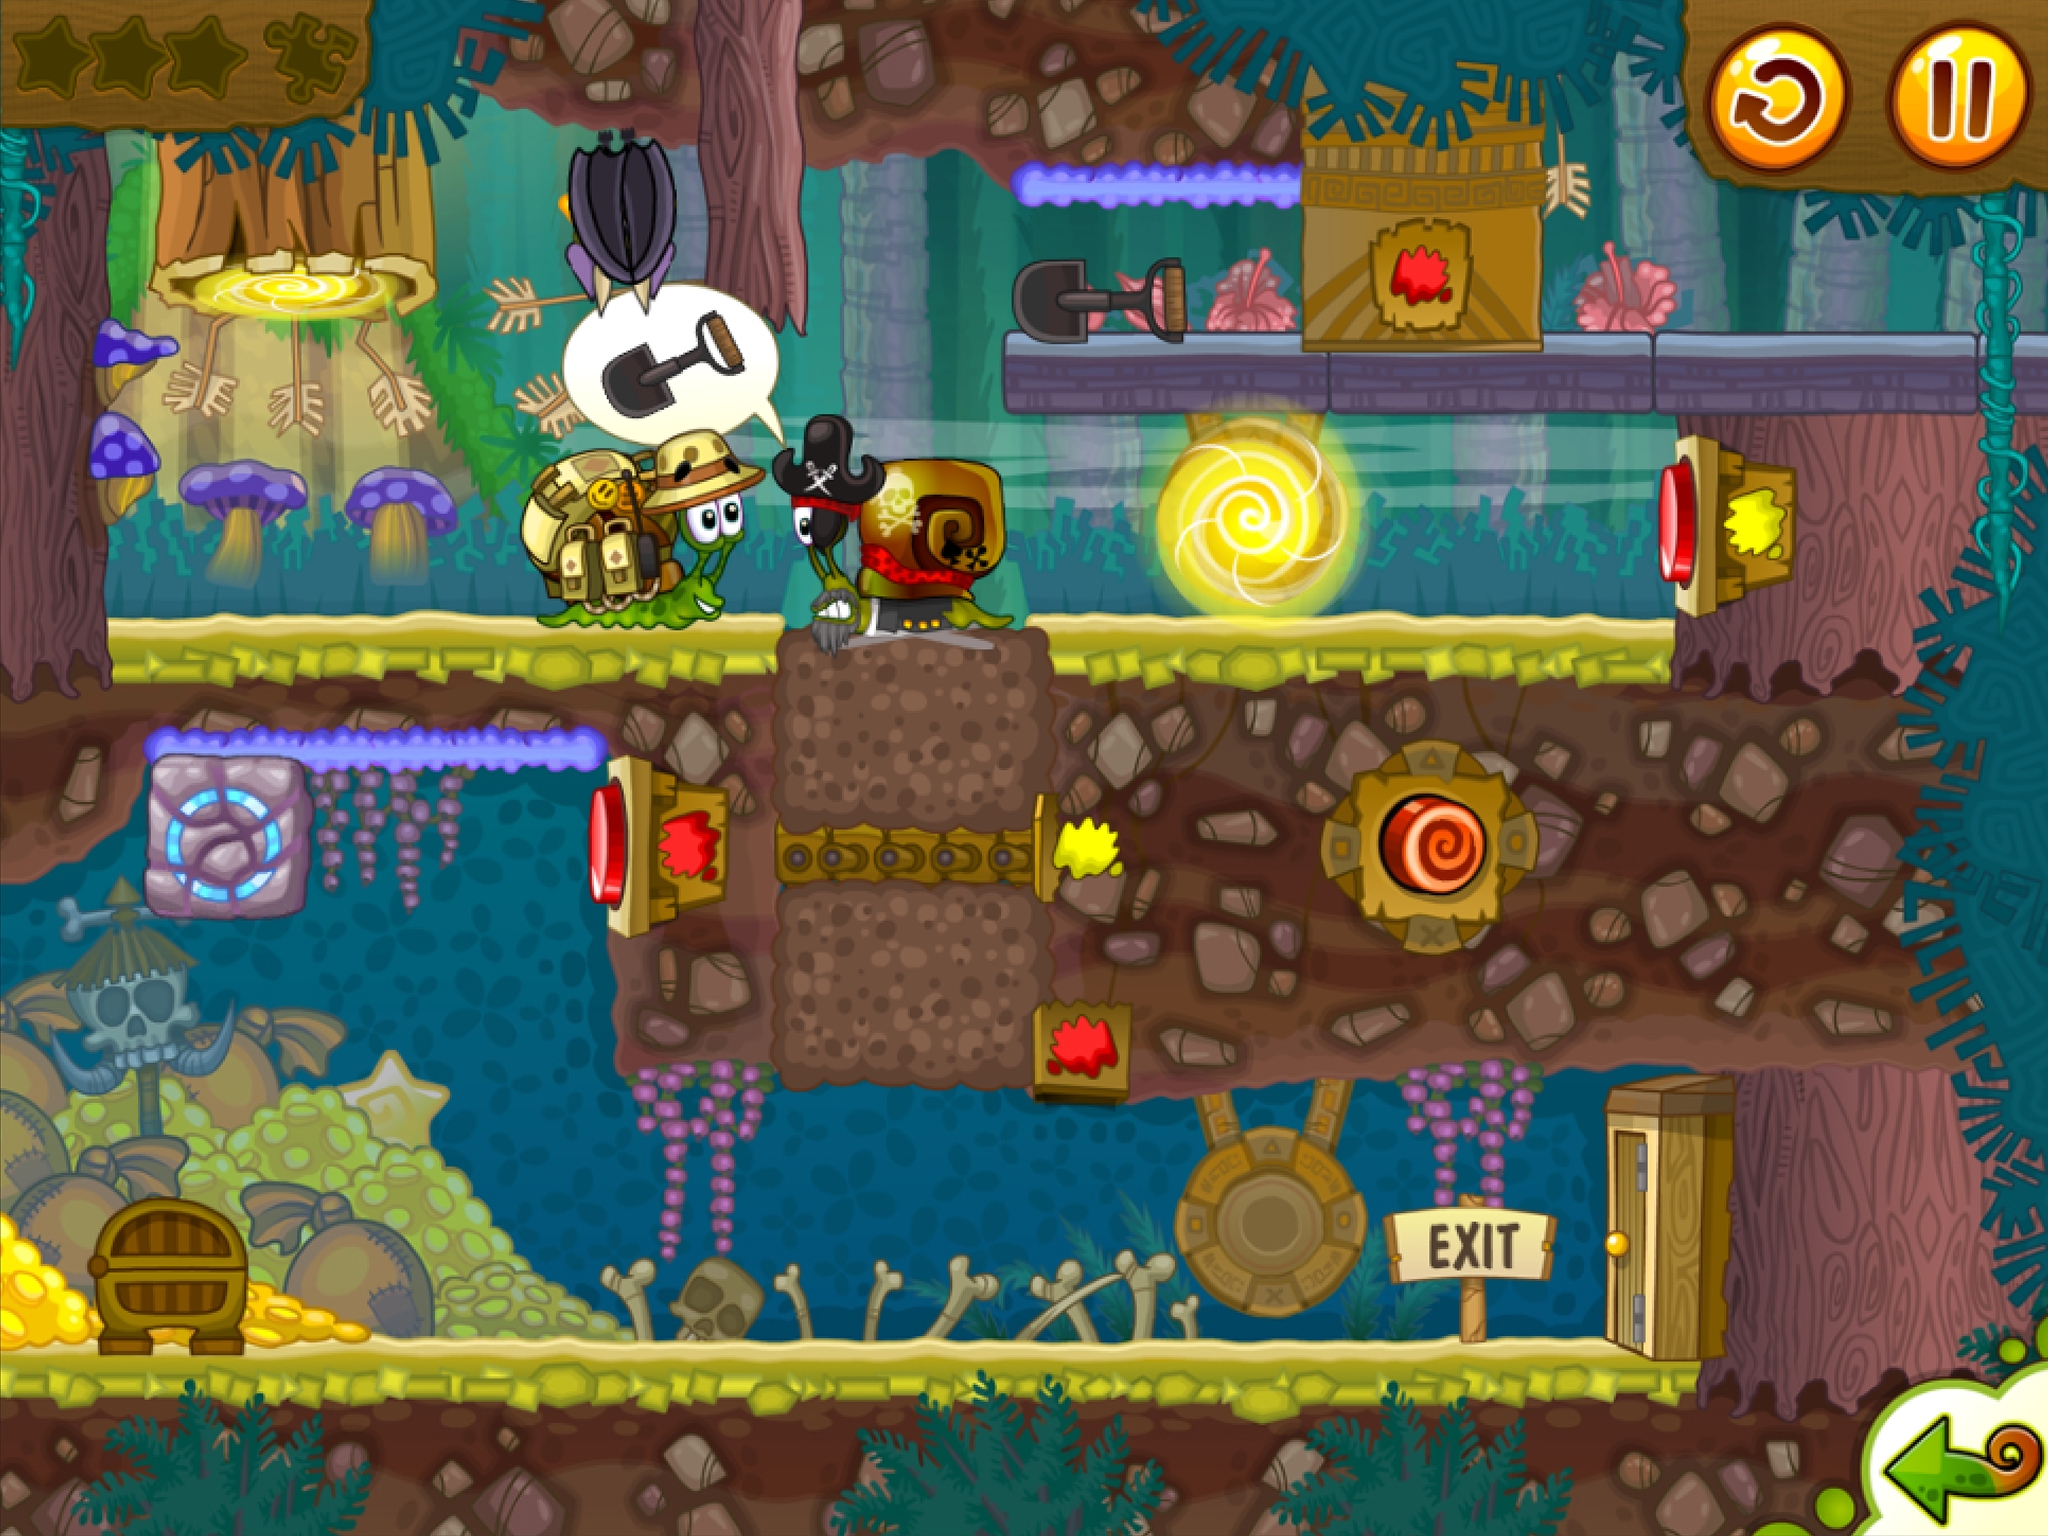 Snail Bob 2 sees the fashion star and puzzle solving mollusc return on iOS today